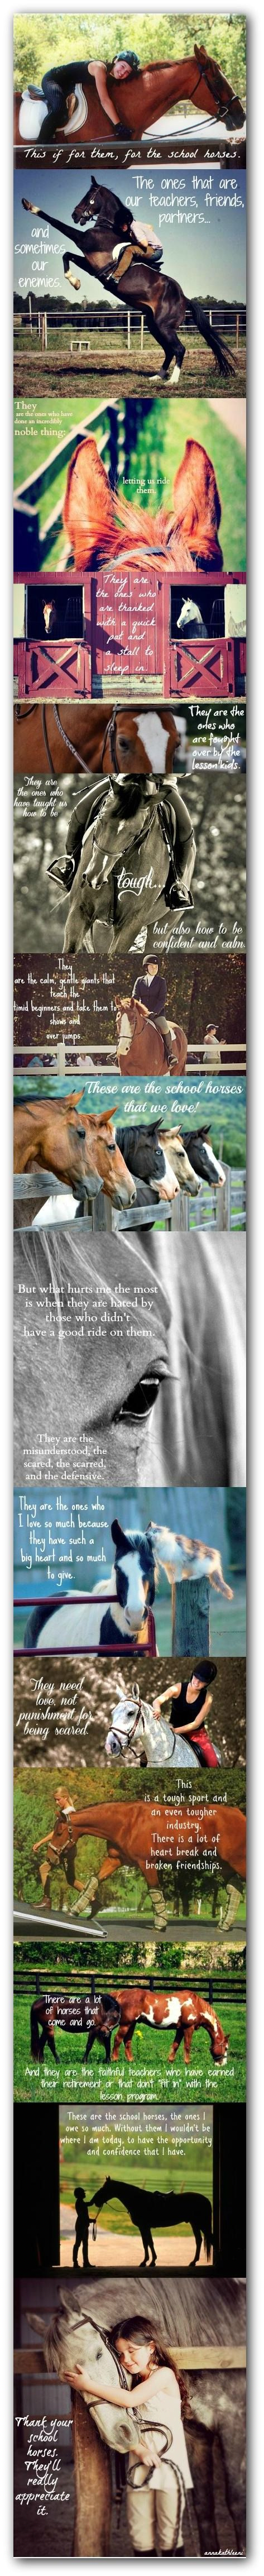 This is true, I have had so many horse that have been great to me and taught me soo many things! Love this!